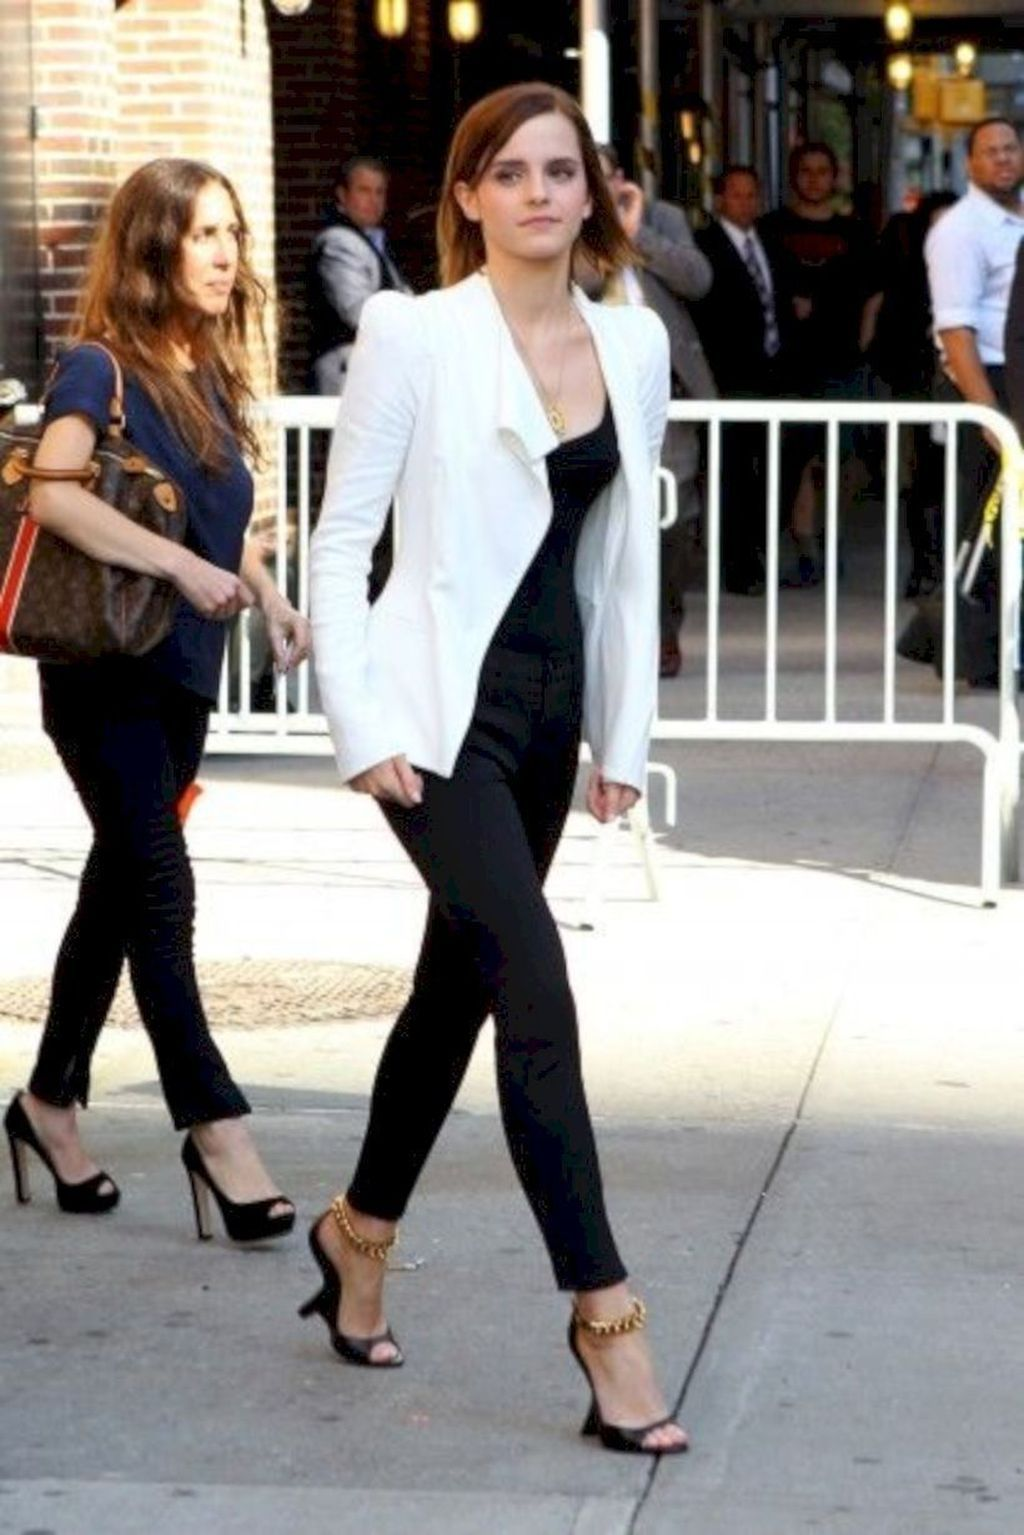 46 Impressive Spring And Summer Work Outfits Ideas For Women